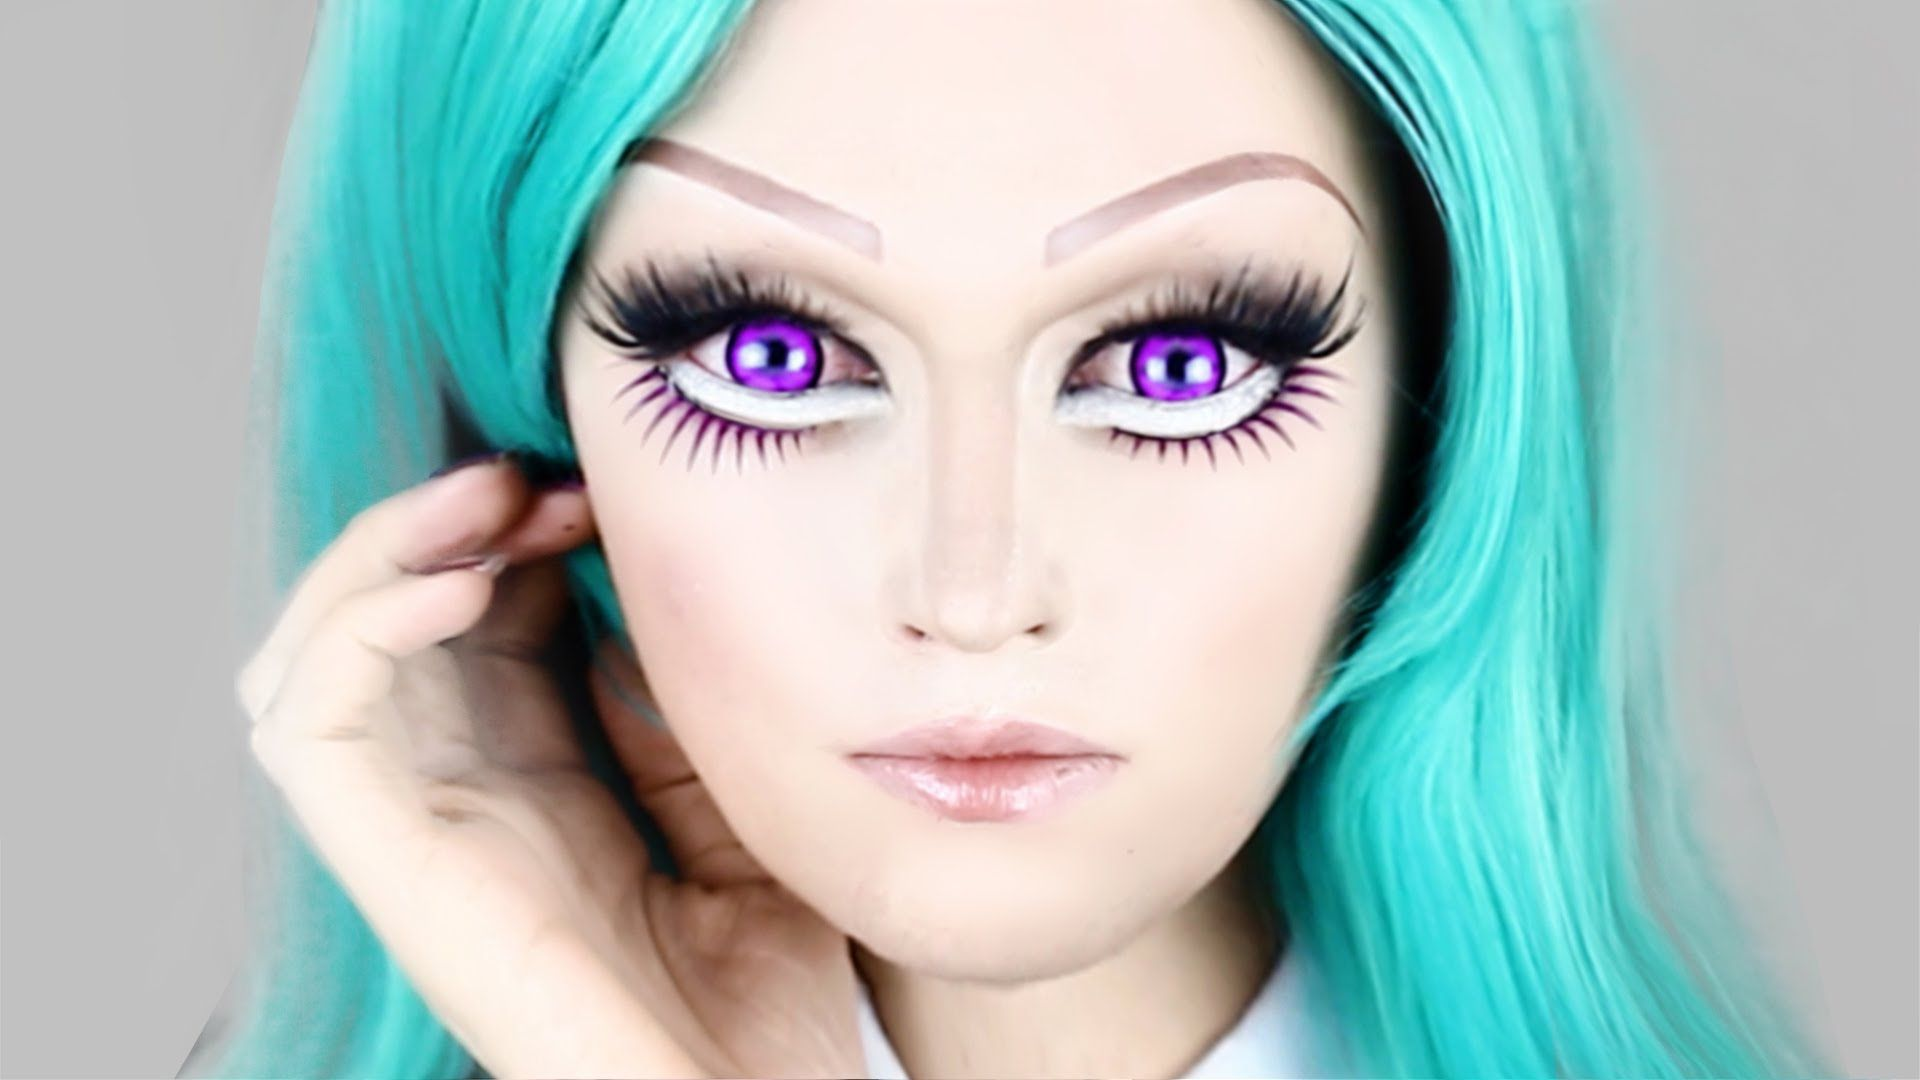 Anime makeup maxresdefaultg teal haircandy hair candy real life anime girl makeup tutorial im hoping to use some of these techniques for my comiccon costume baditri Choice Image